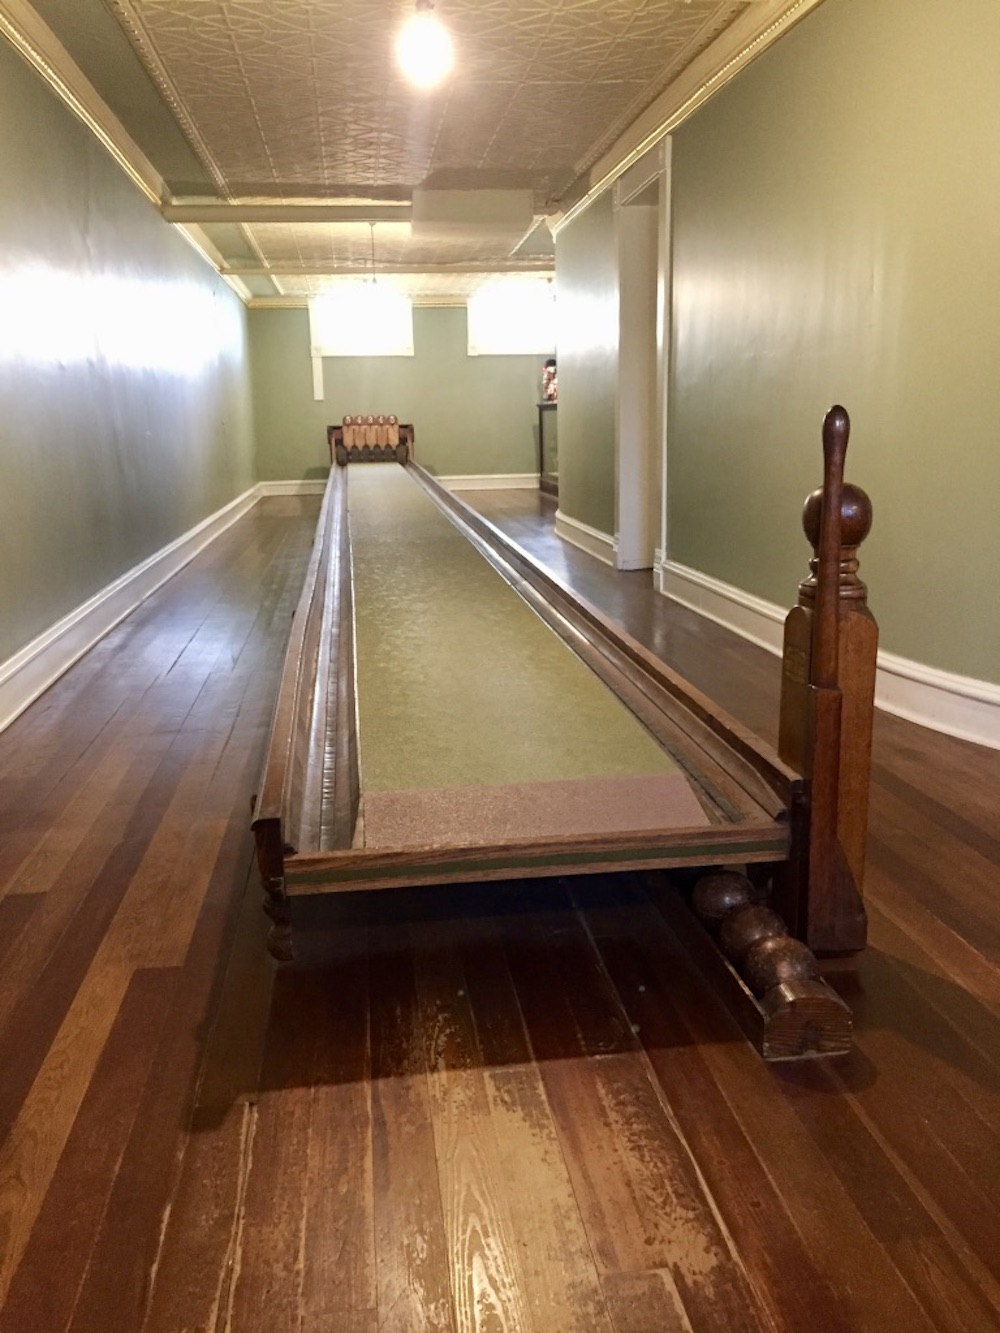 Wooden box ball bowling alley in the basement of the Seelye Mansion in Abilene, Kansas